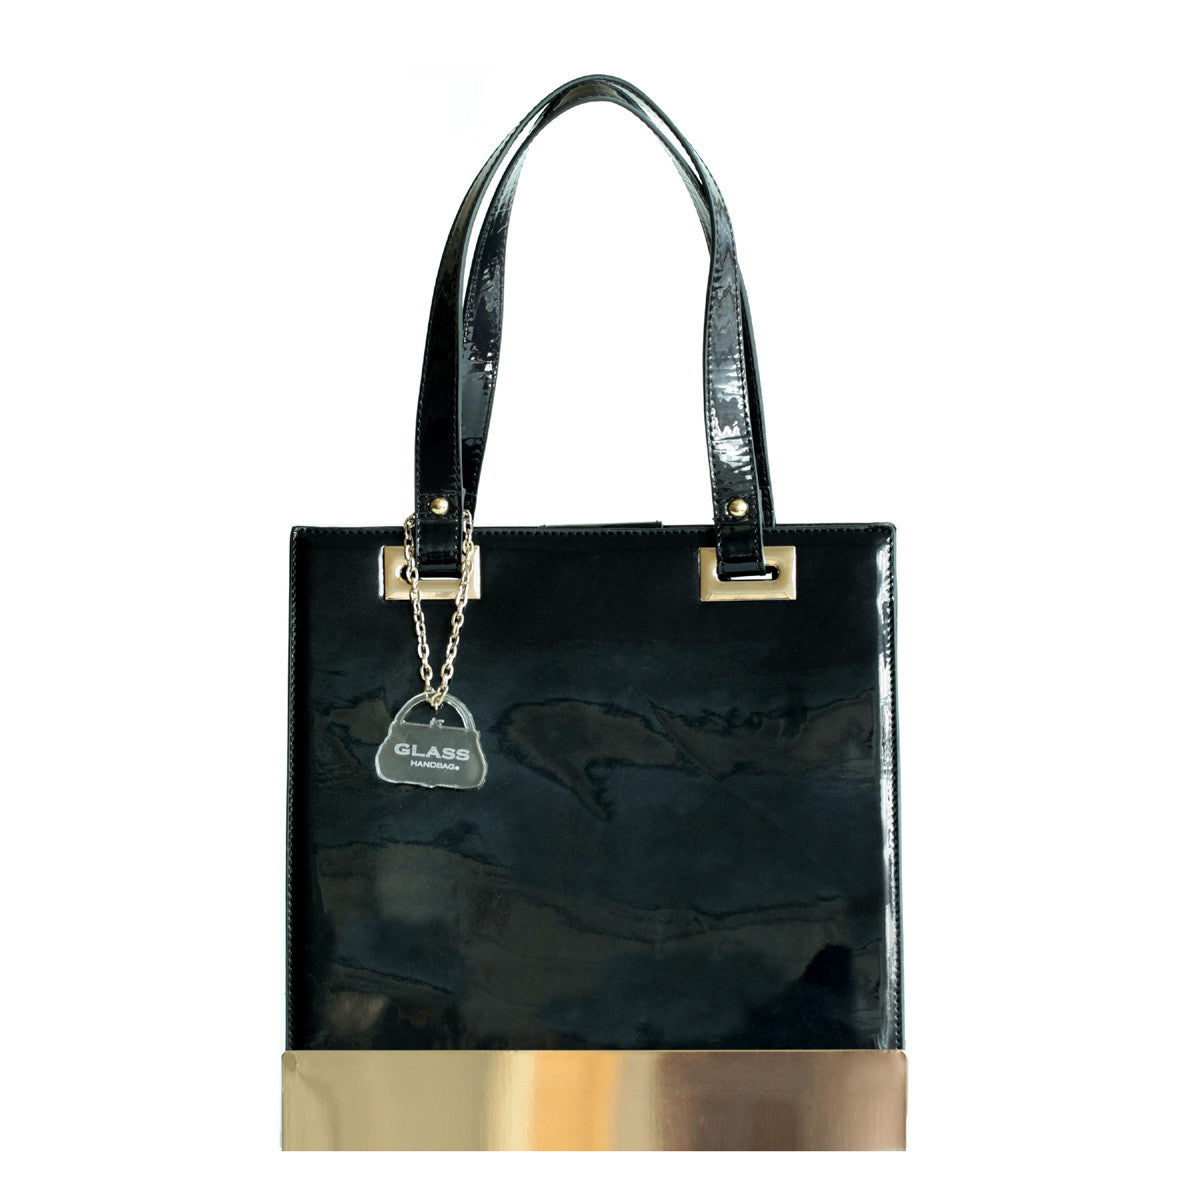 Glass Handbag Jewel Patent Shoulder Bag in Black Onyx